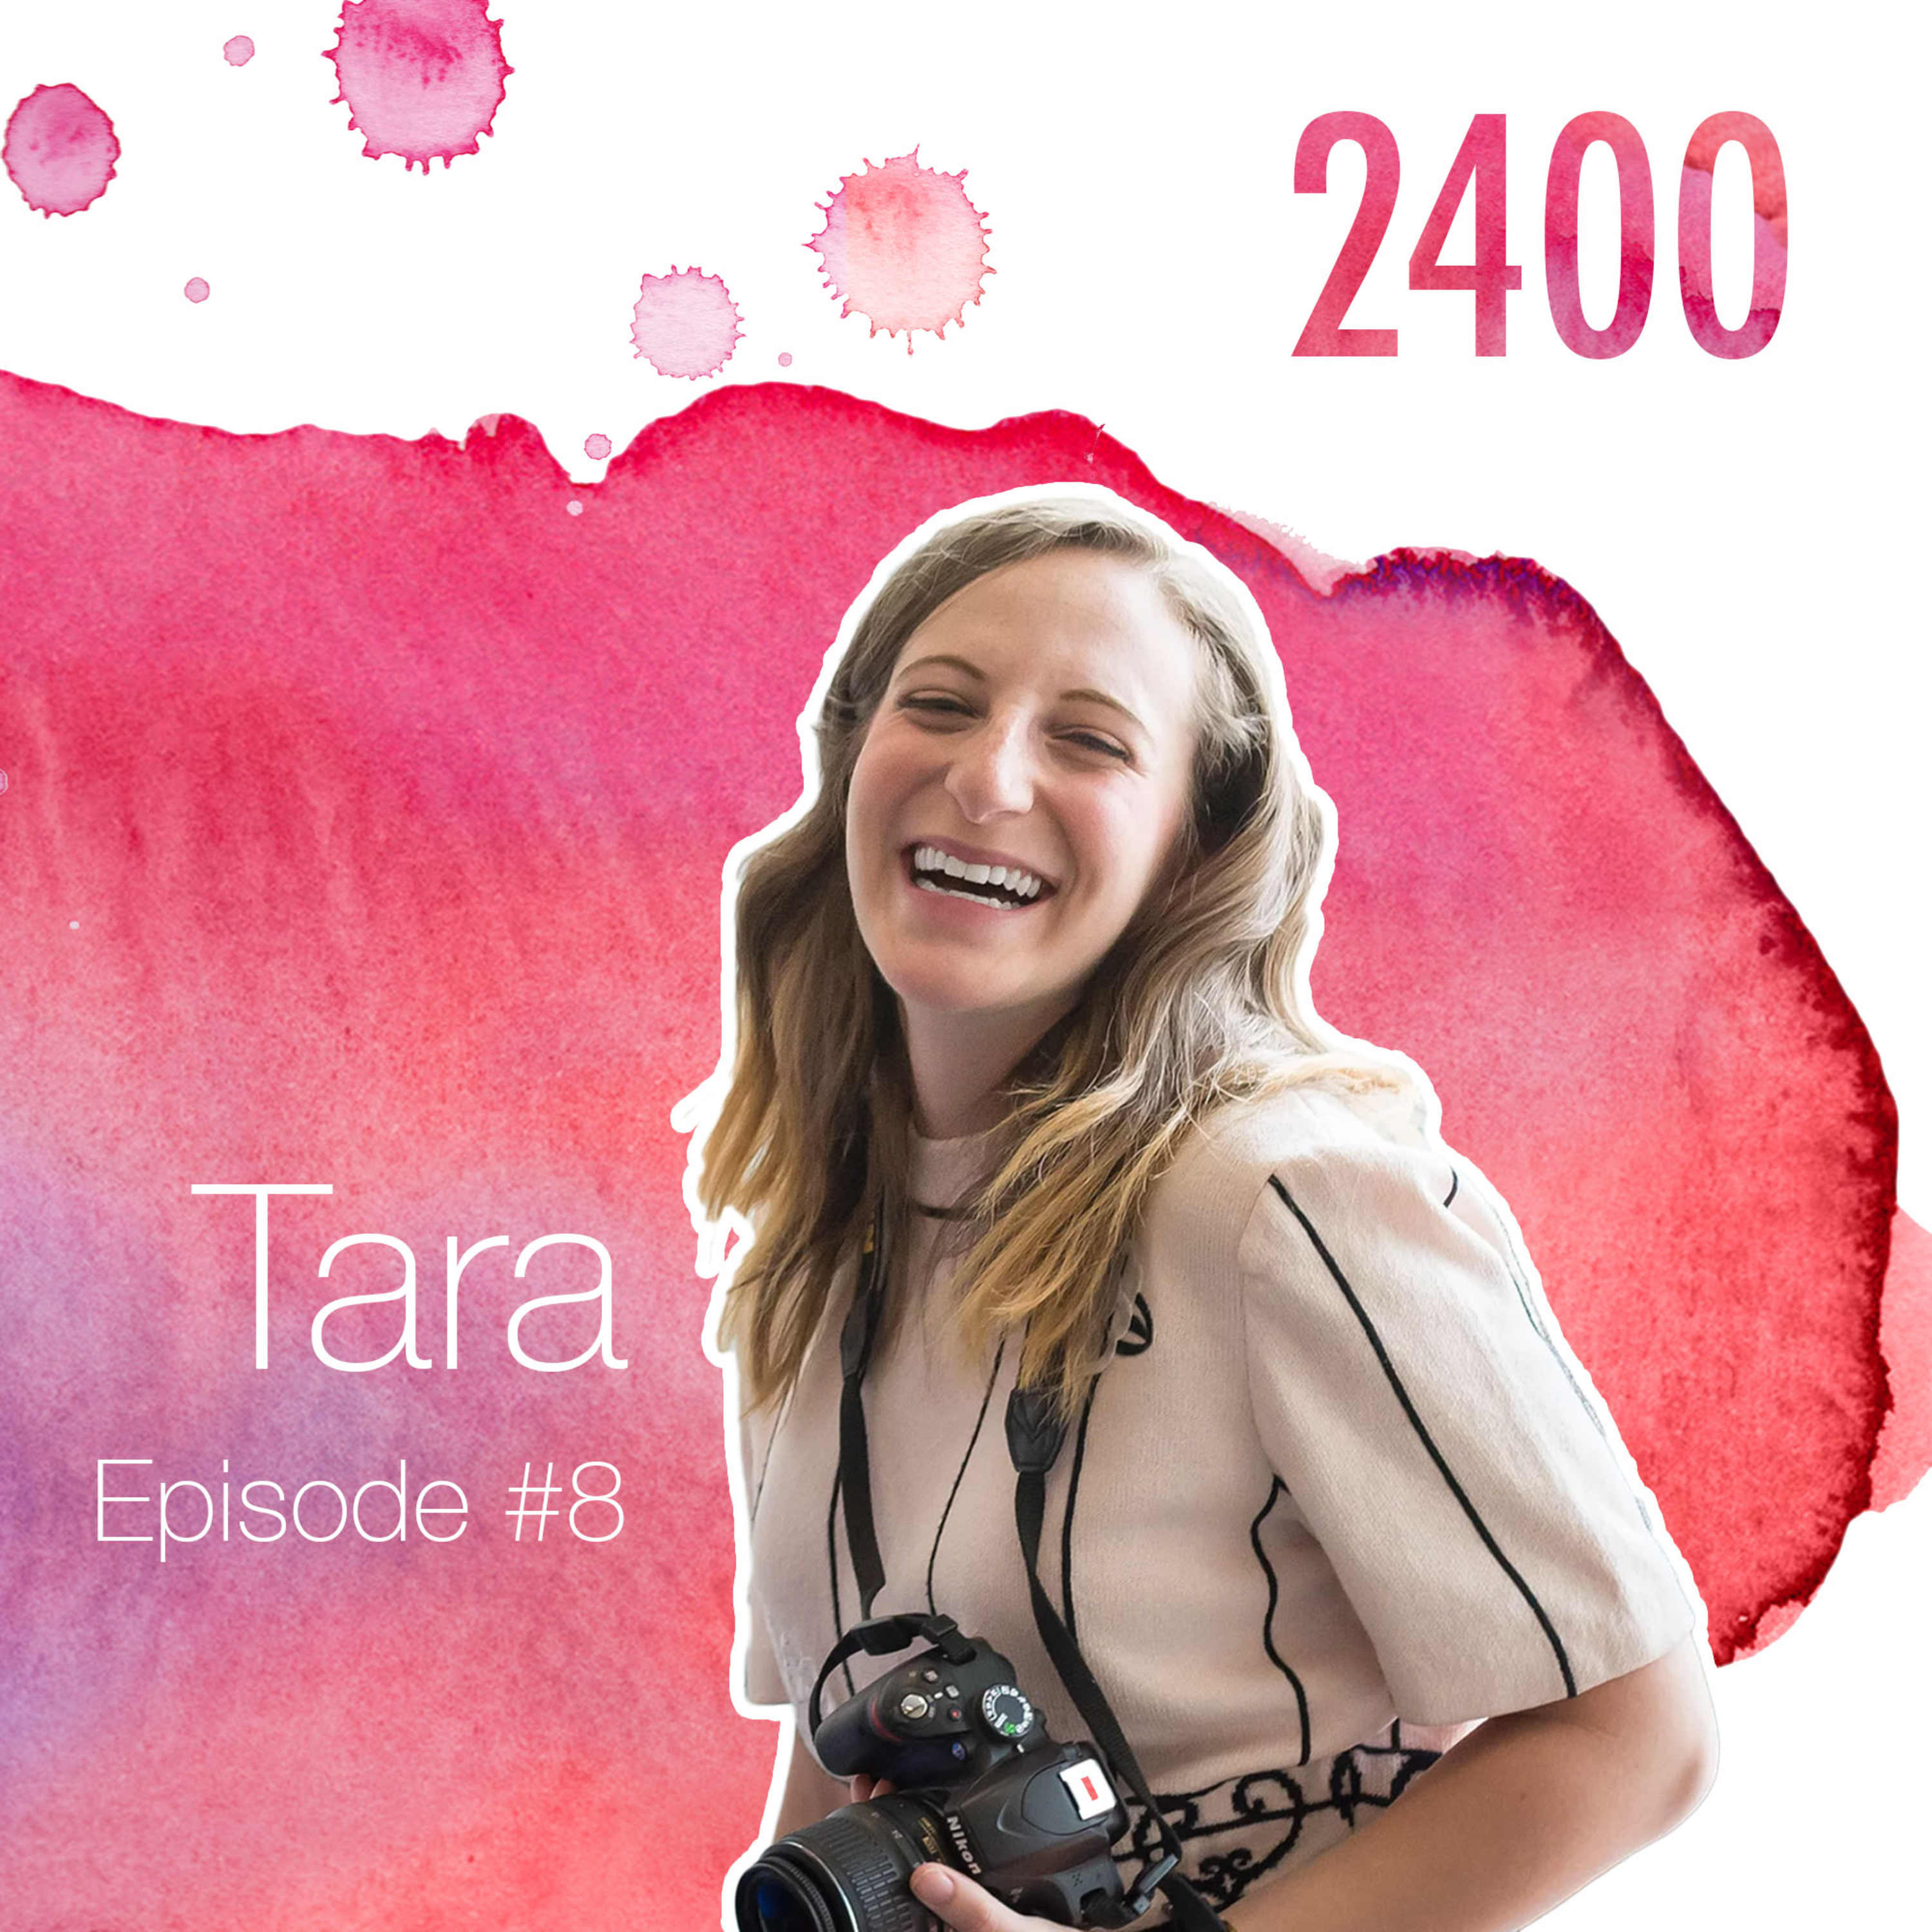 Tara Pokras - Episode 8 🇬🇧 « Getting people to think back to those pivotal moments »